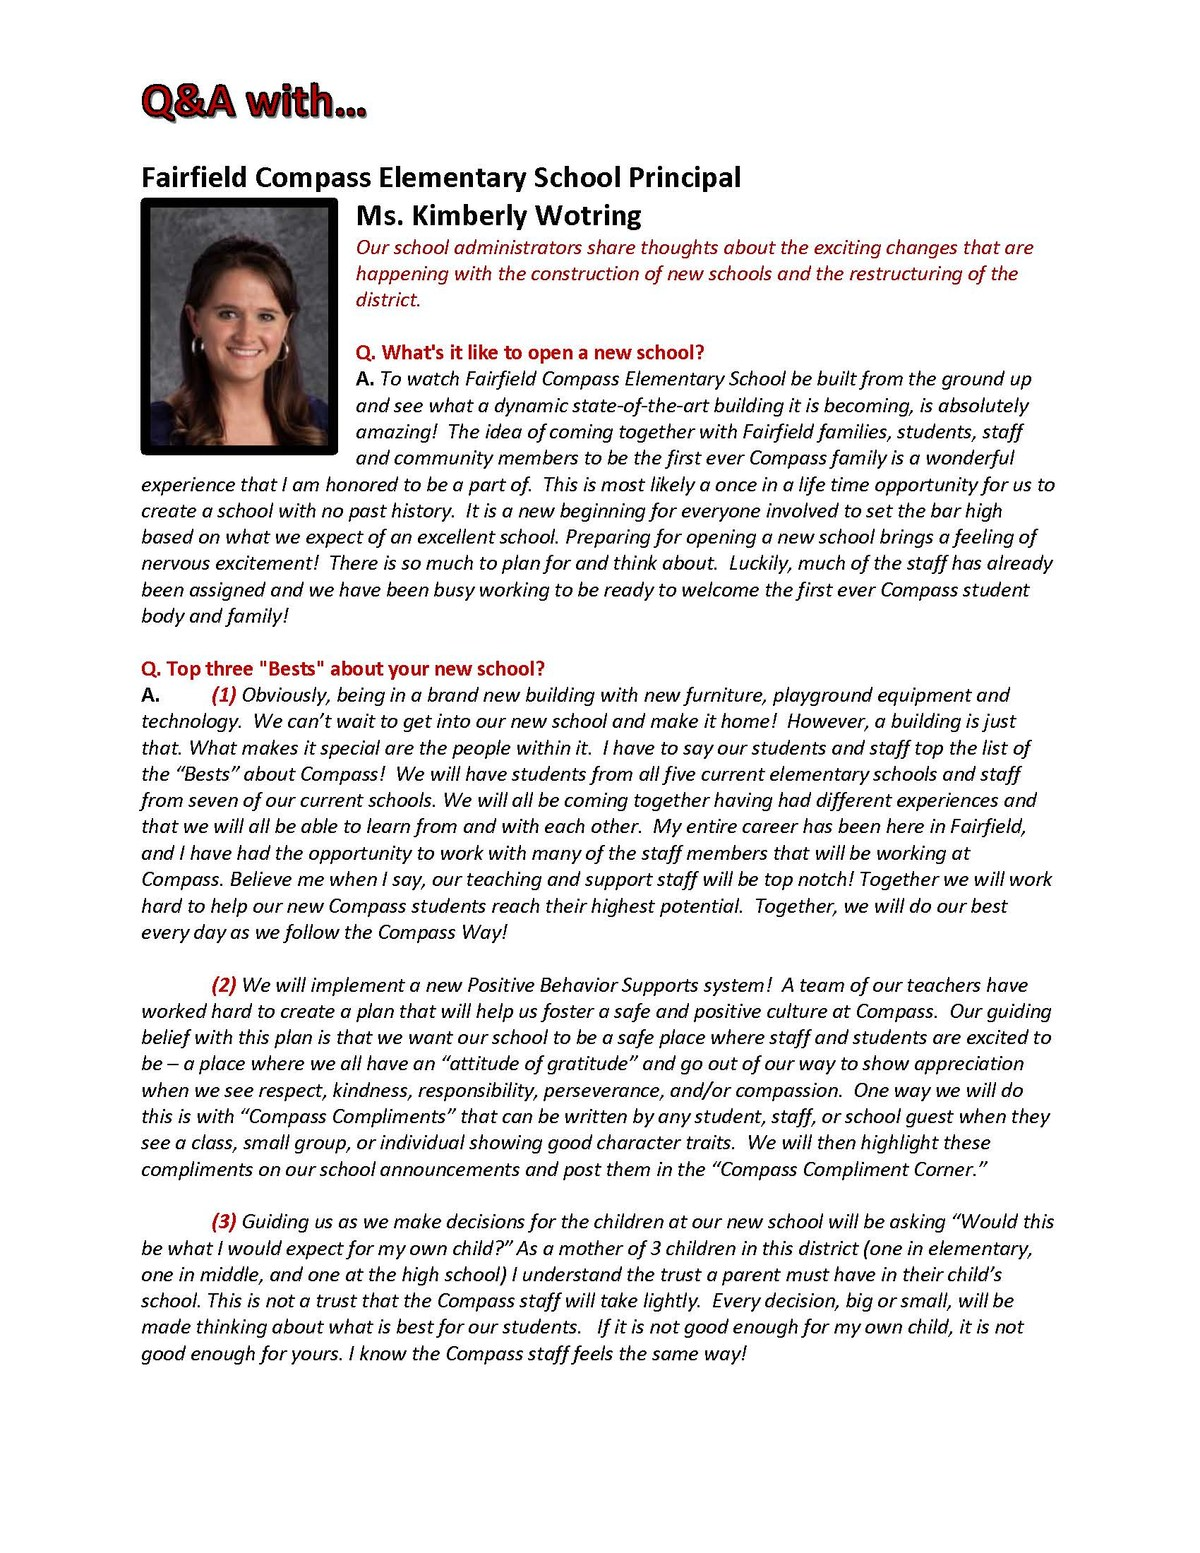 Q&A with Kim Wotring Compass Principal